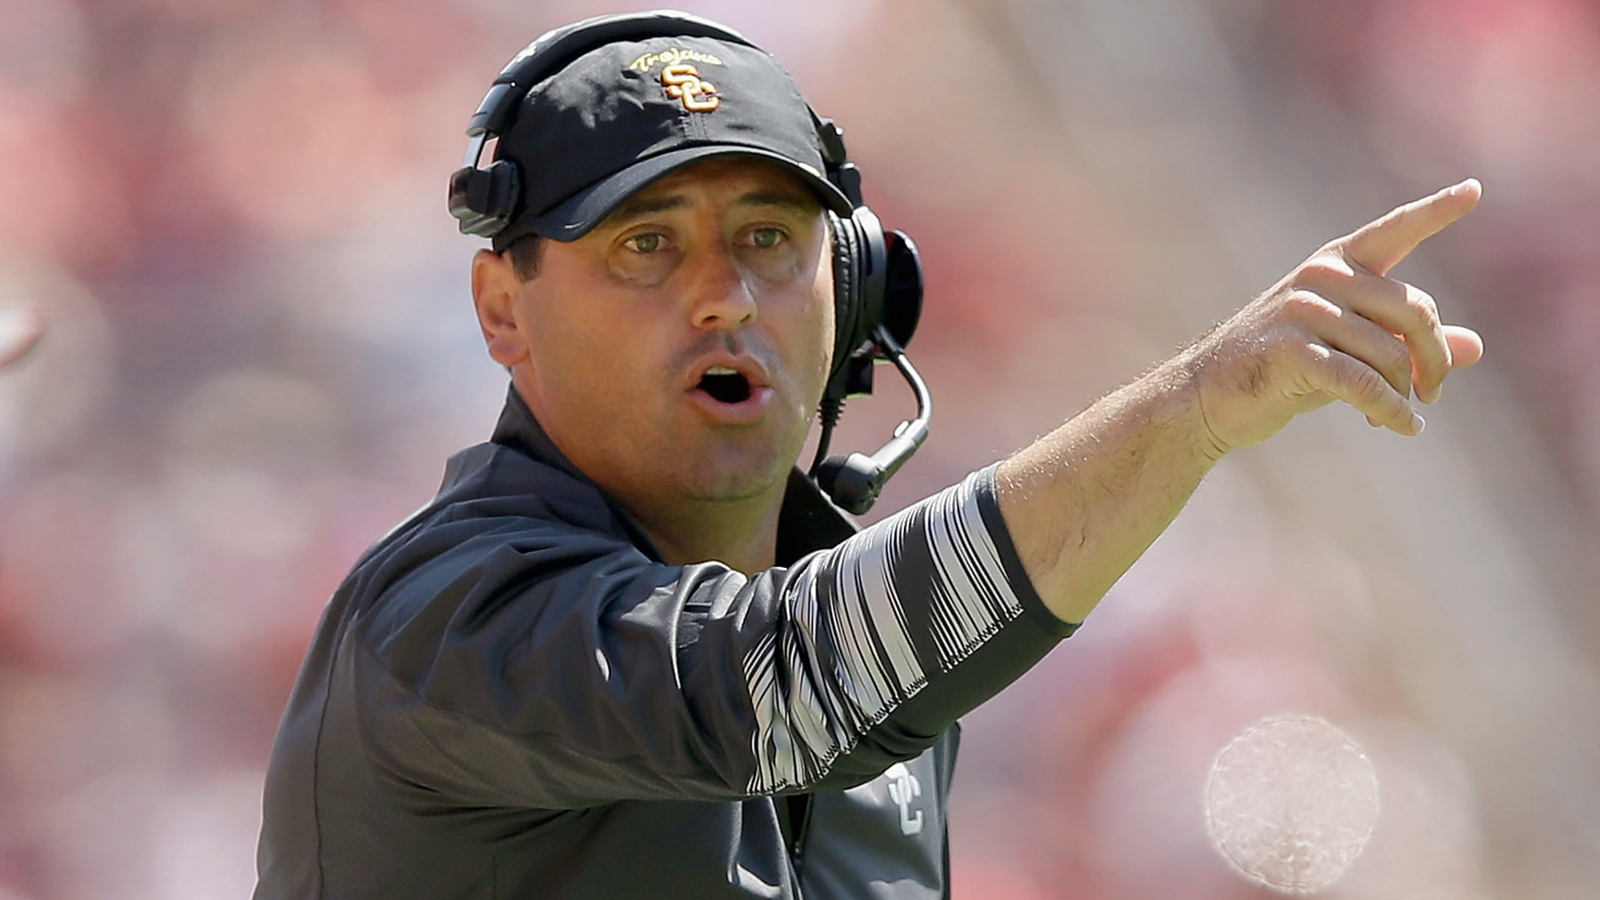 Steve Sarkisian will serve as OC in the National Championship